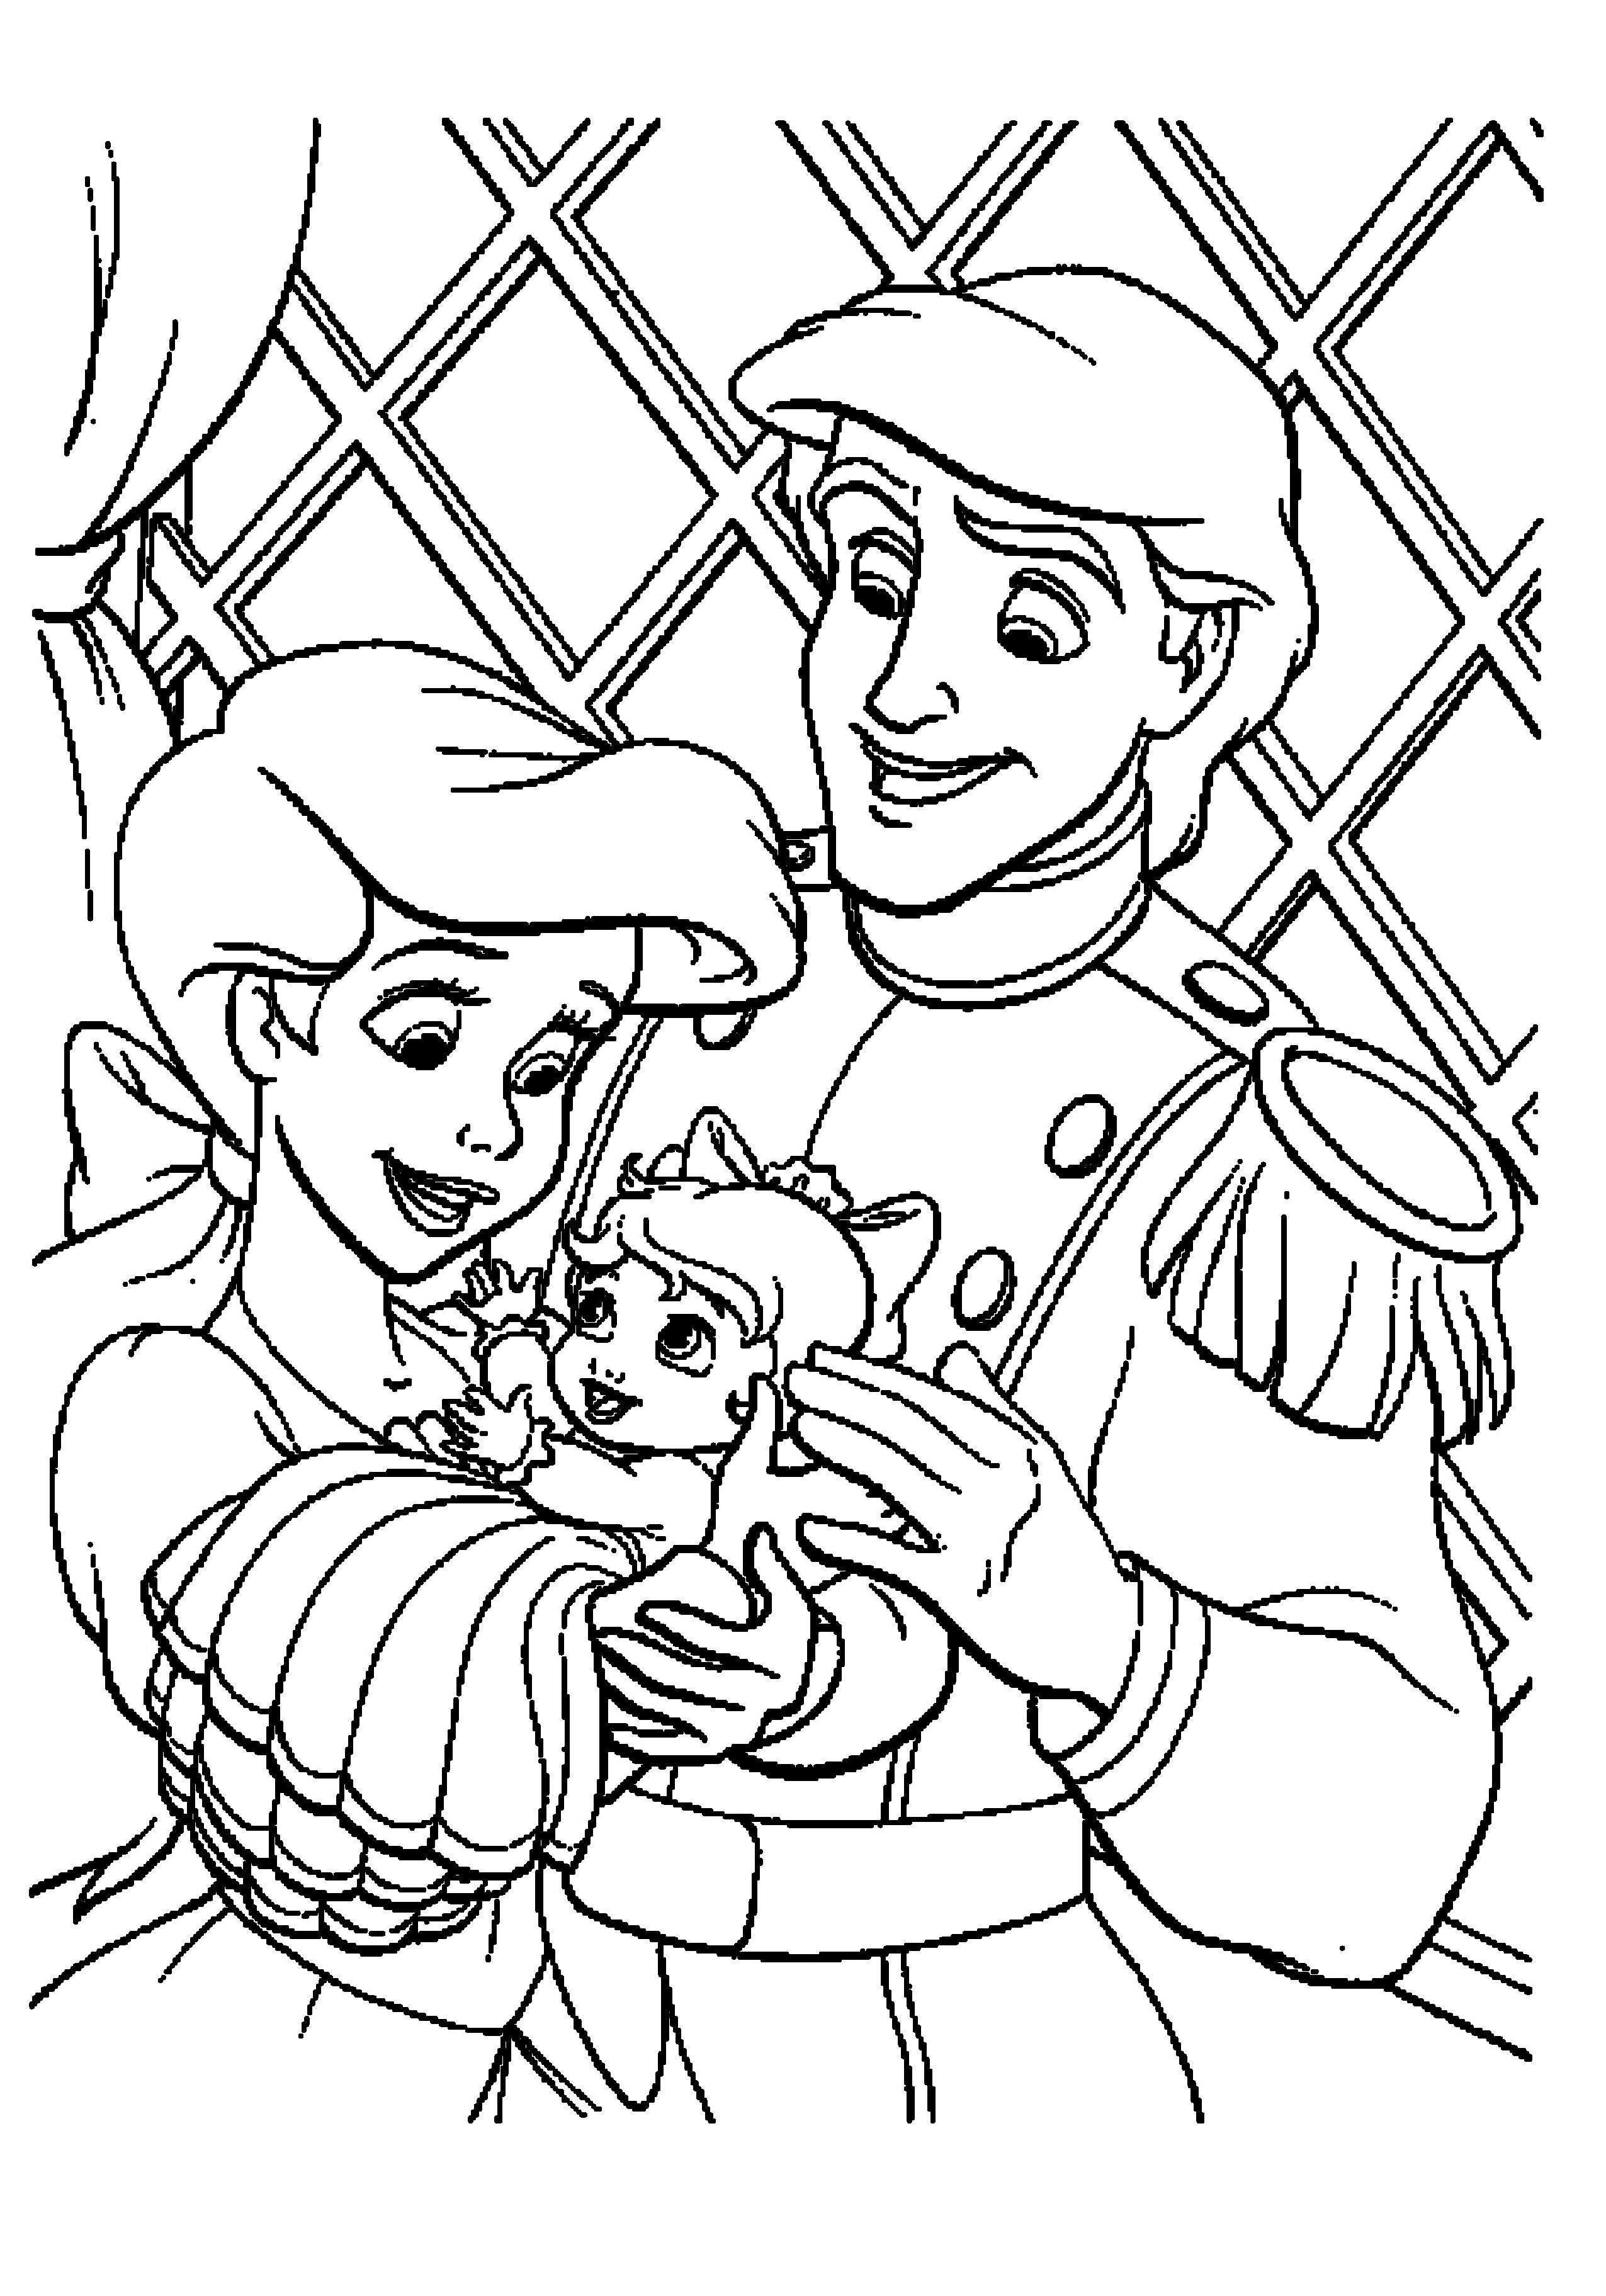 Ariel Little Mermaid Coloring Pages Family Prince And Kids Jpg